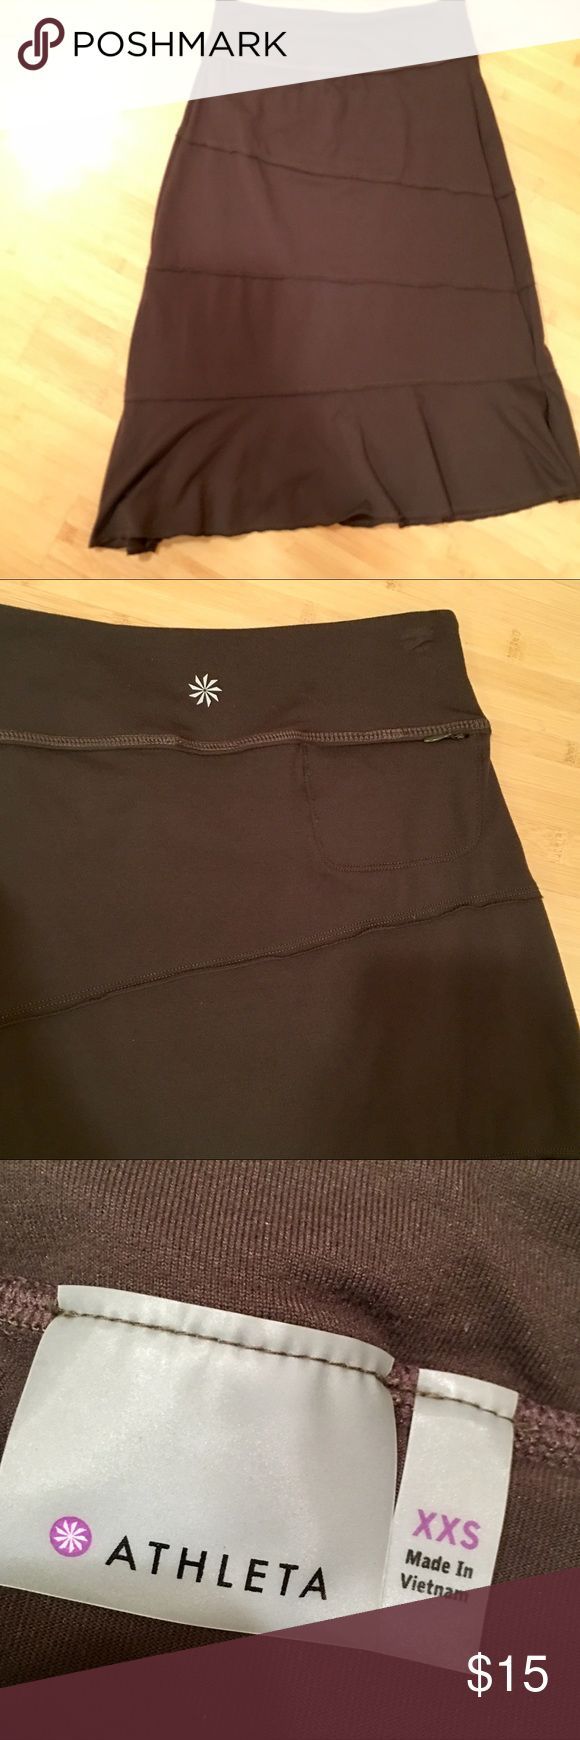 Athleta skirt - olive Athleta skirt with asymmetrical stitching  Fits snug on top and flows out. Great with flats or tennis shoes  Barely worn. Athleta Skirts Midi